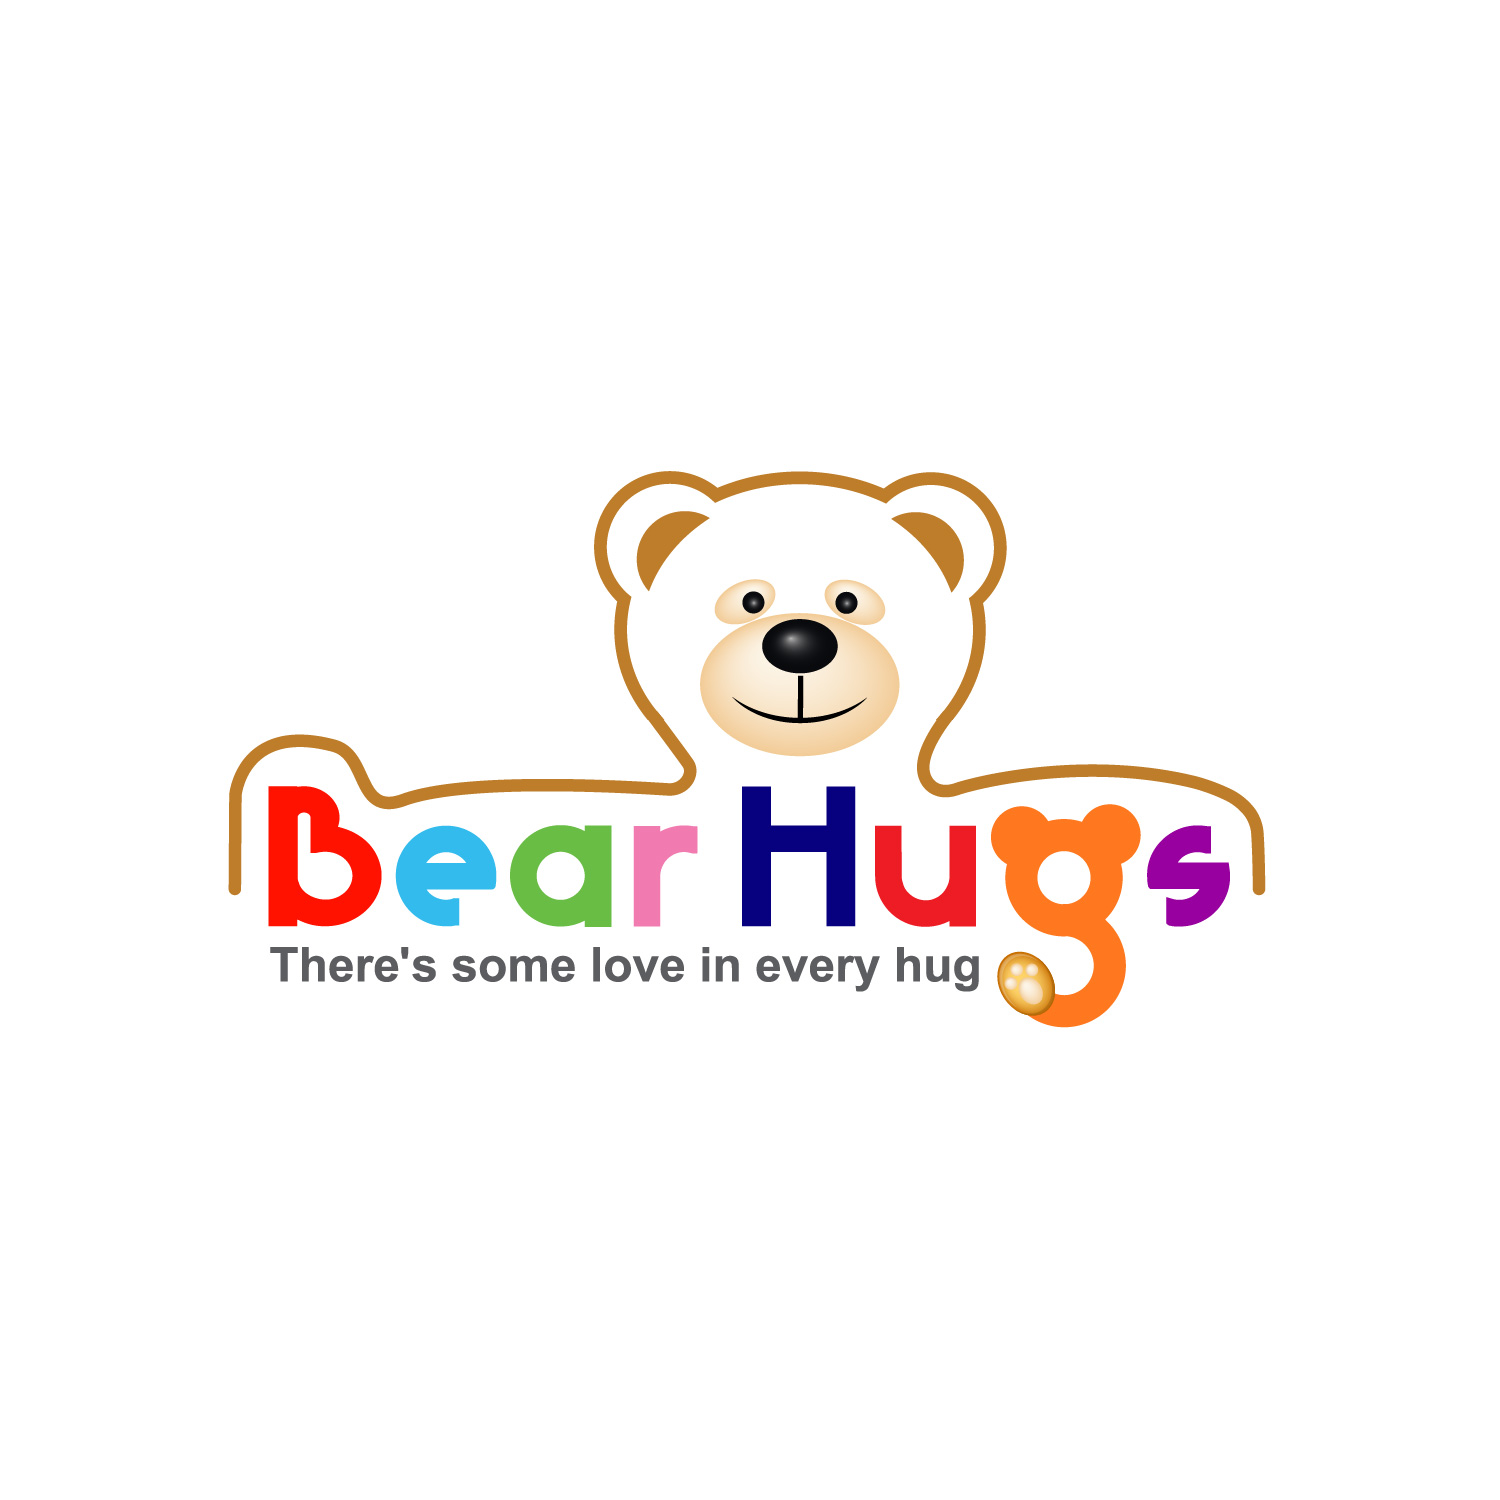 Logo Design by lagalag - Entry No. 40 in the Logo Design Contest Inspiring Logo Design for BearHugs.